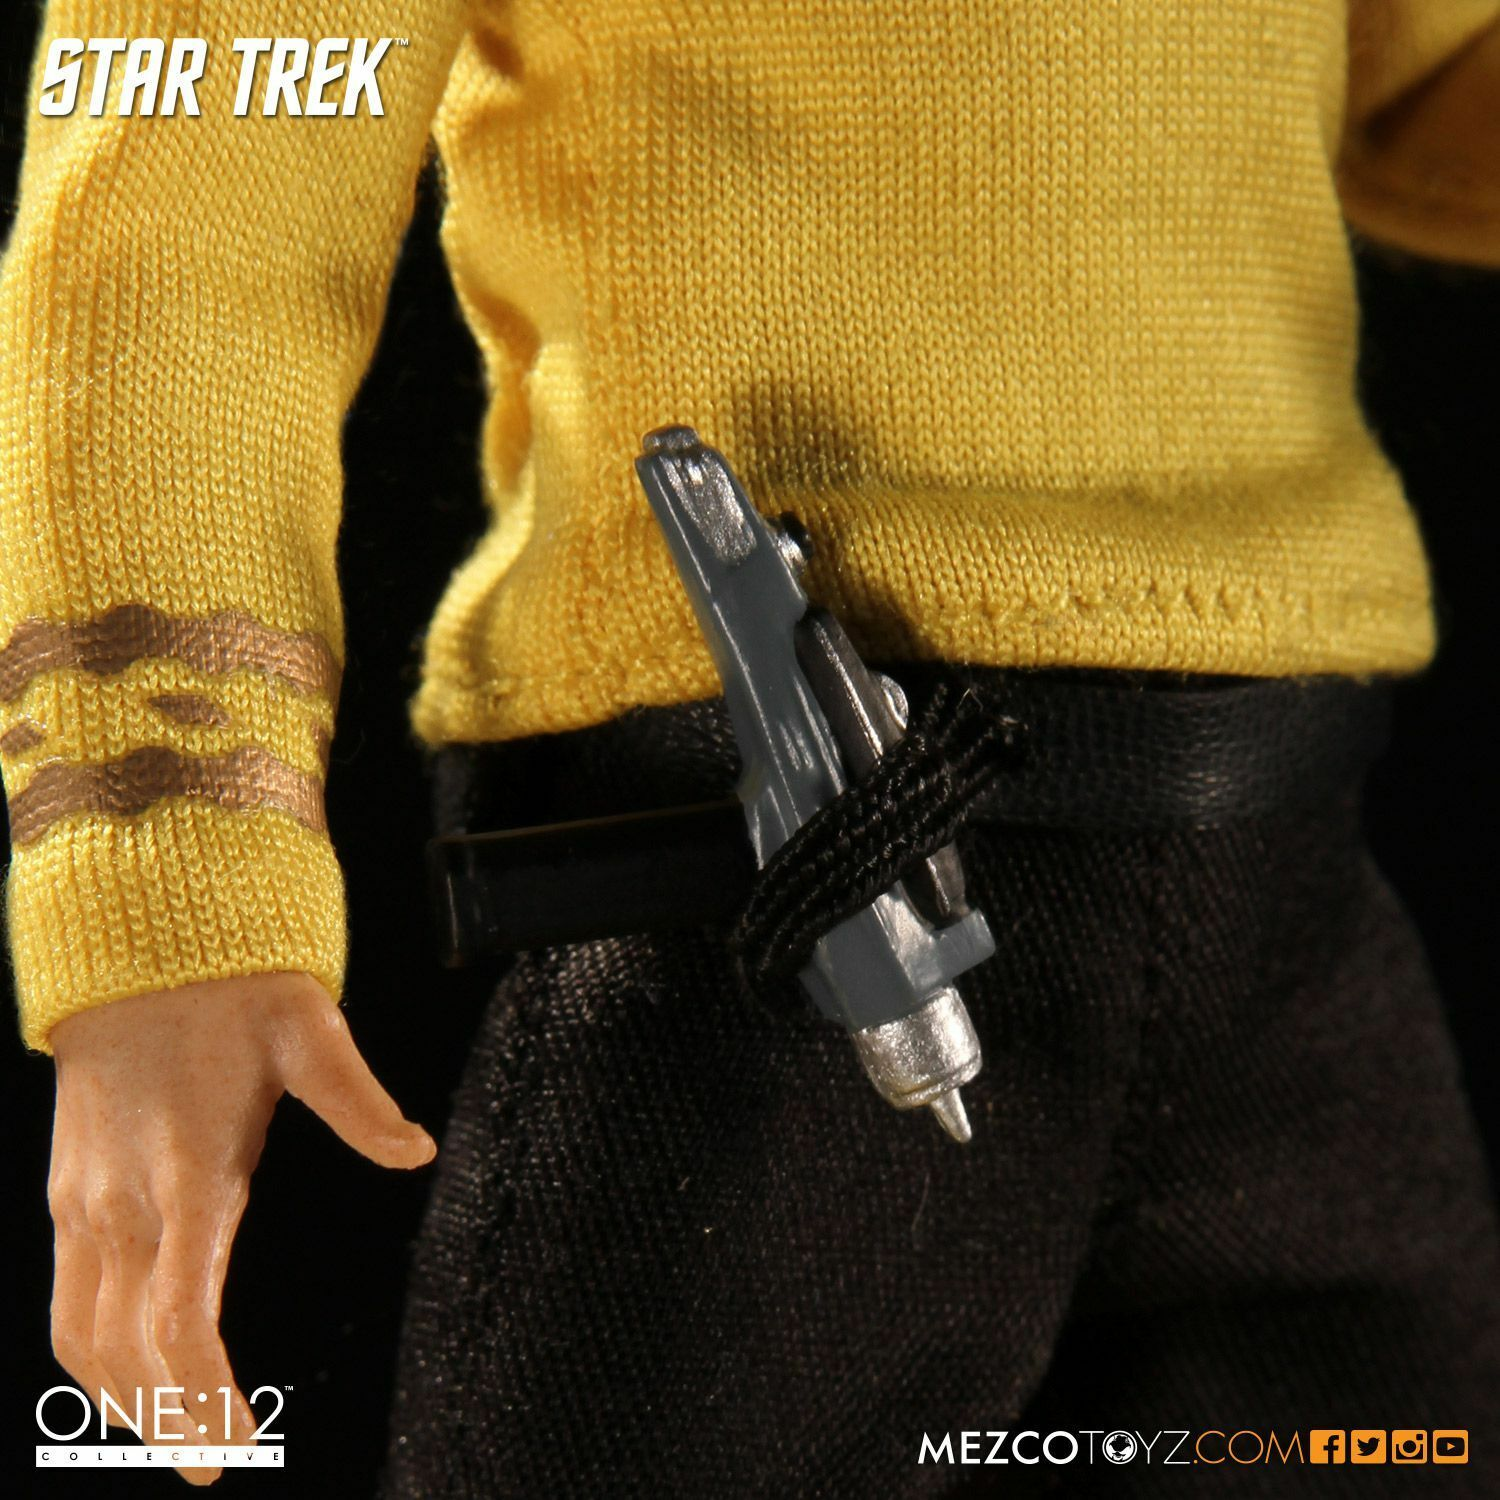 MEZCO giocattoli estrella TREK CAPTAIN CAPTAIN CAPTAIN KIRK ONE 12 Collection azione cifra 1 12 CAPITANO f1045c